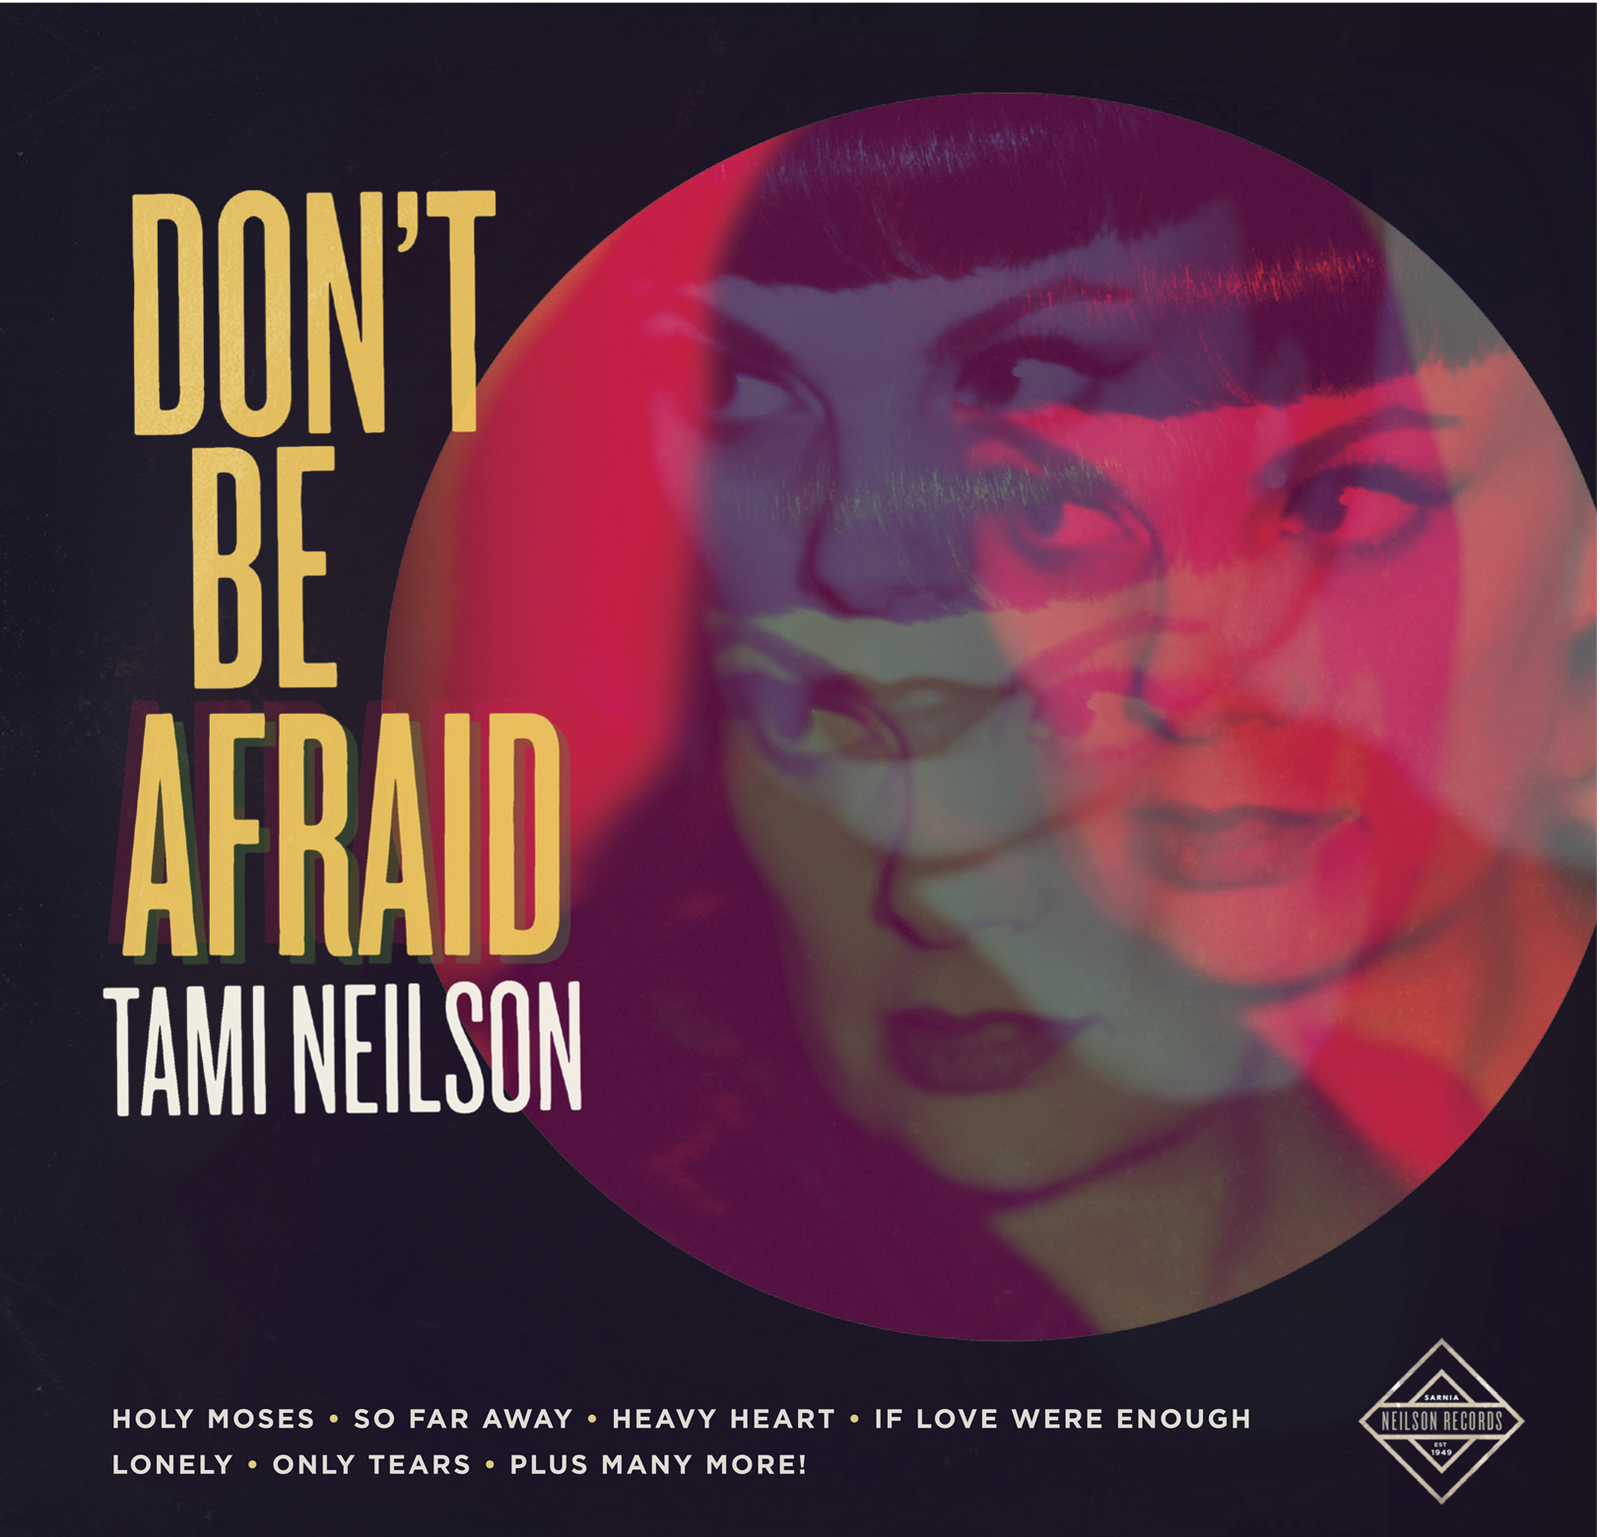 Don't Be Afraid by Tami Neilson image